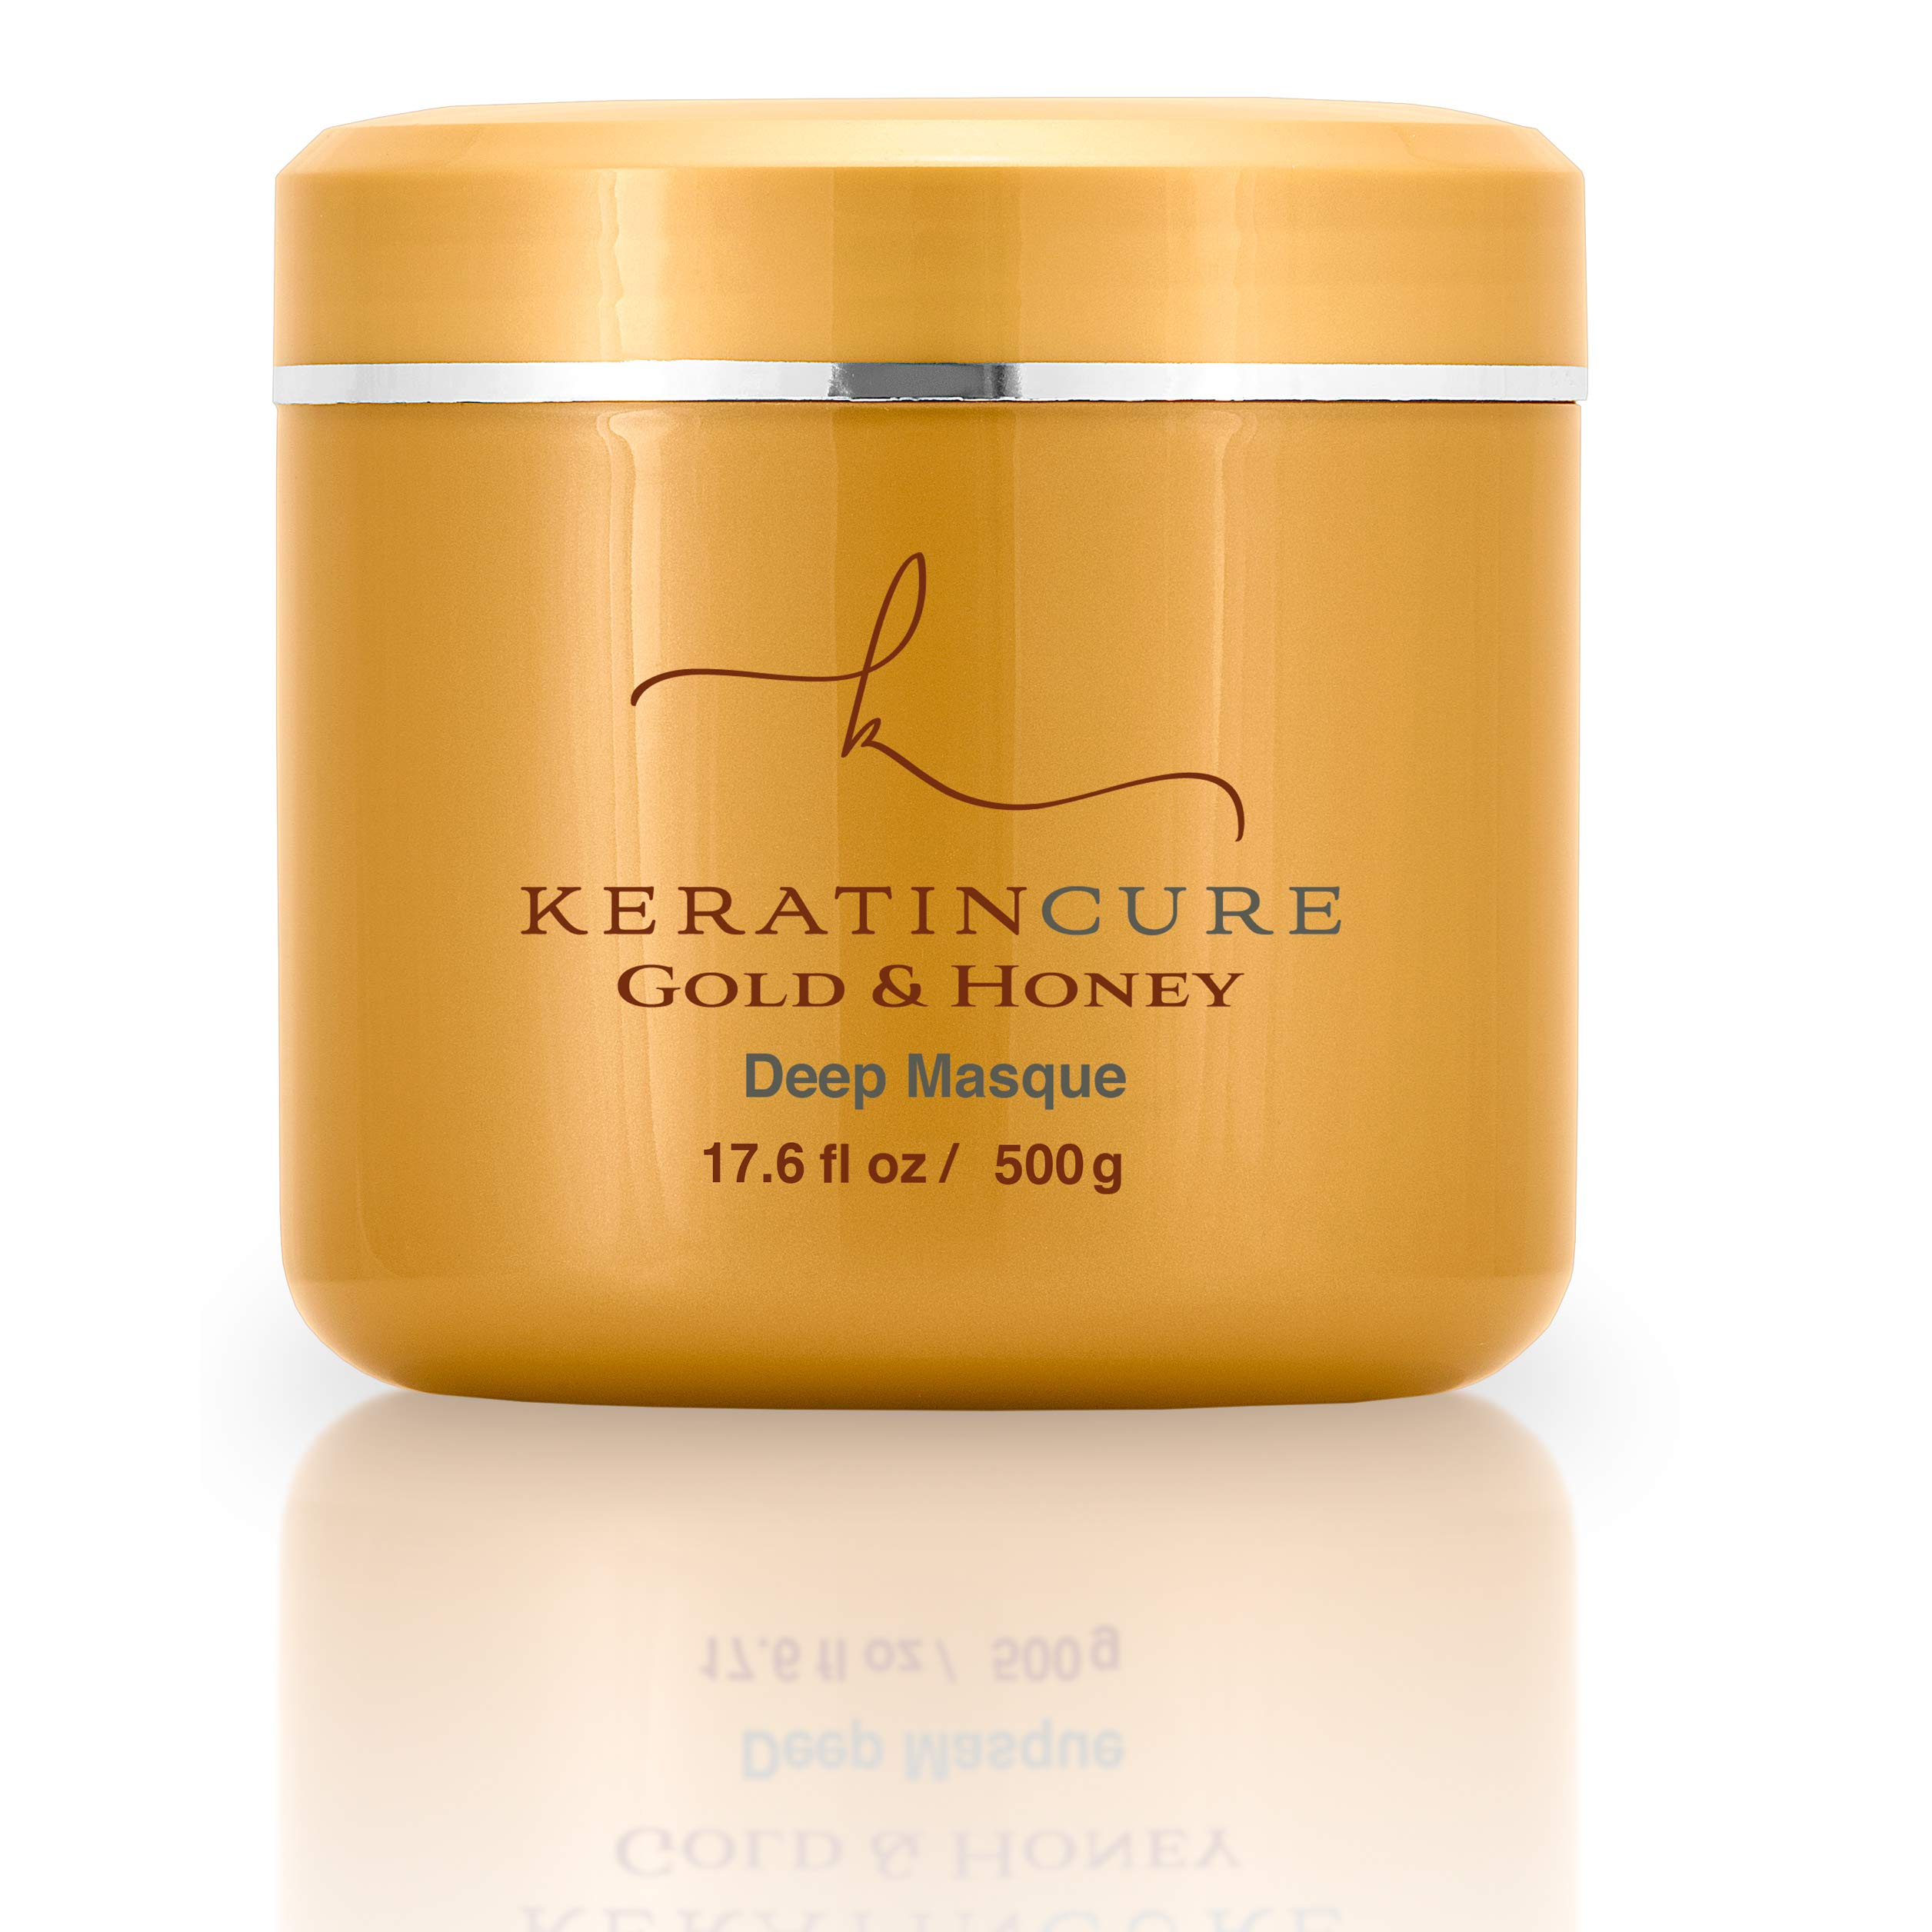 Keratin Cure Gold and Honey Deep Hair Mask Masque Moisturizing Reparation, Argan, Coconut, Marula Oils Strengthen Dry Damaged Hair Promotes Hair Growth Relieves Scalp for all hair types 17 Oz